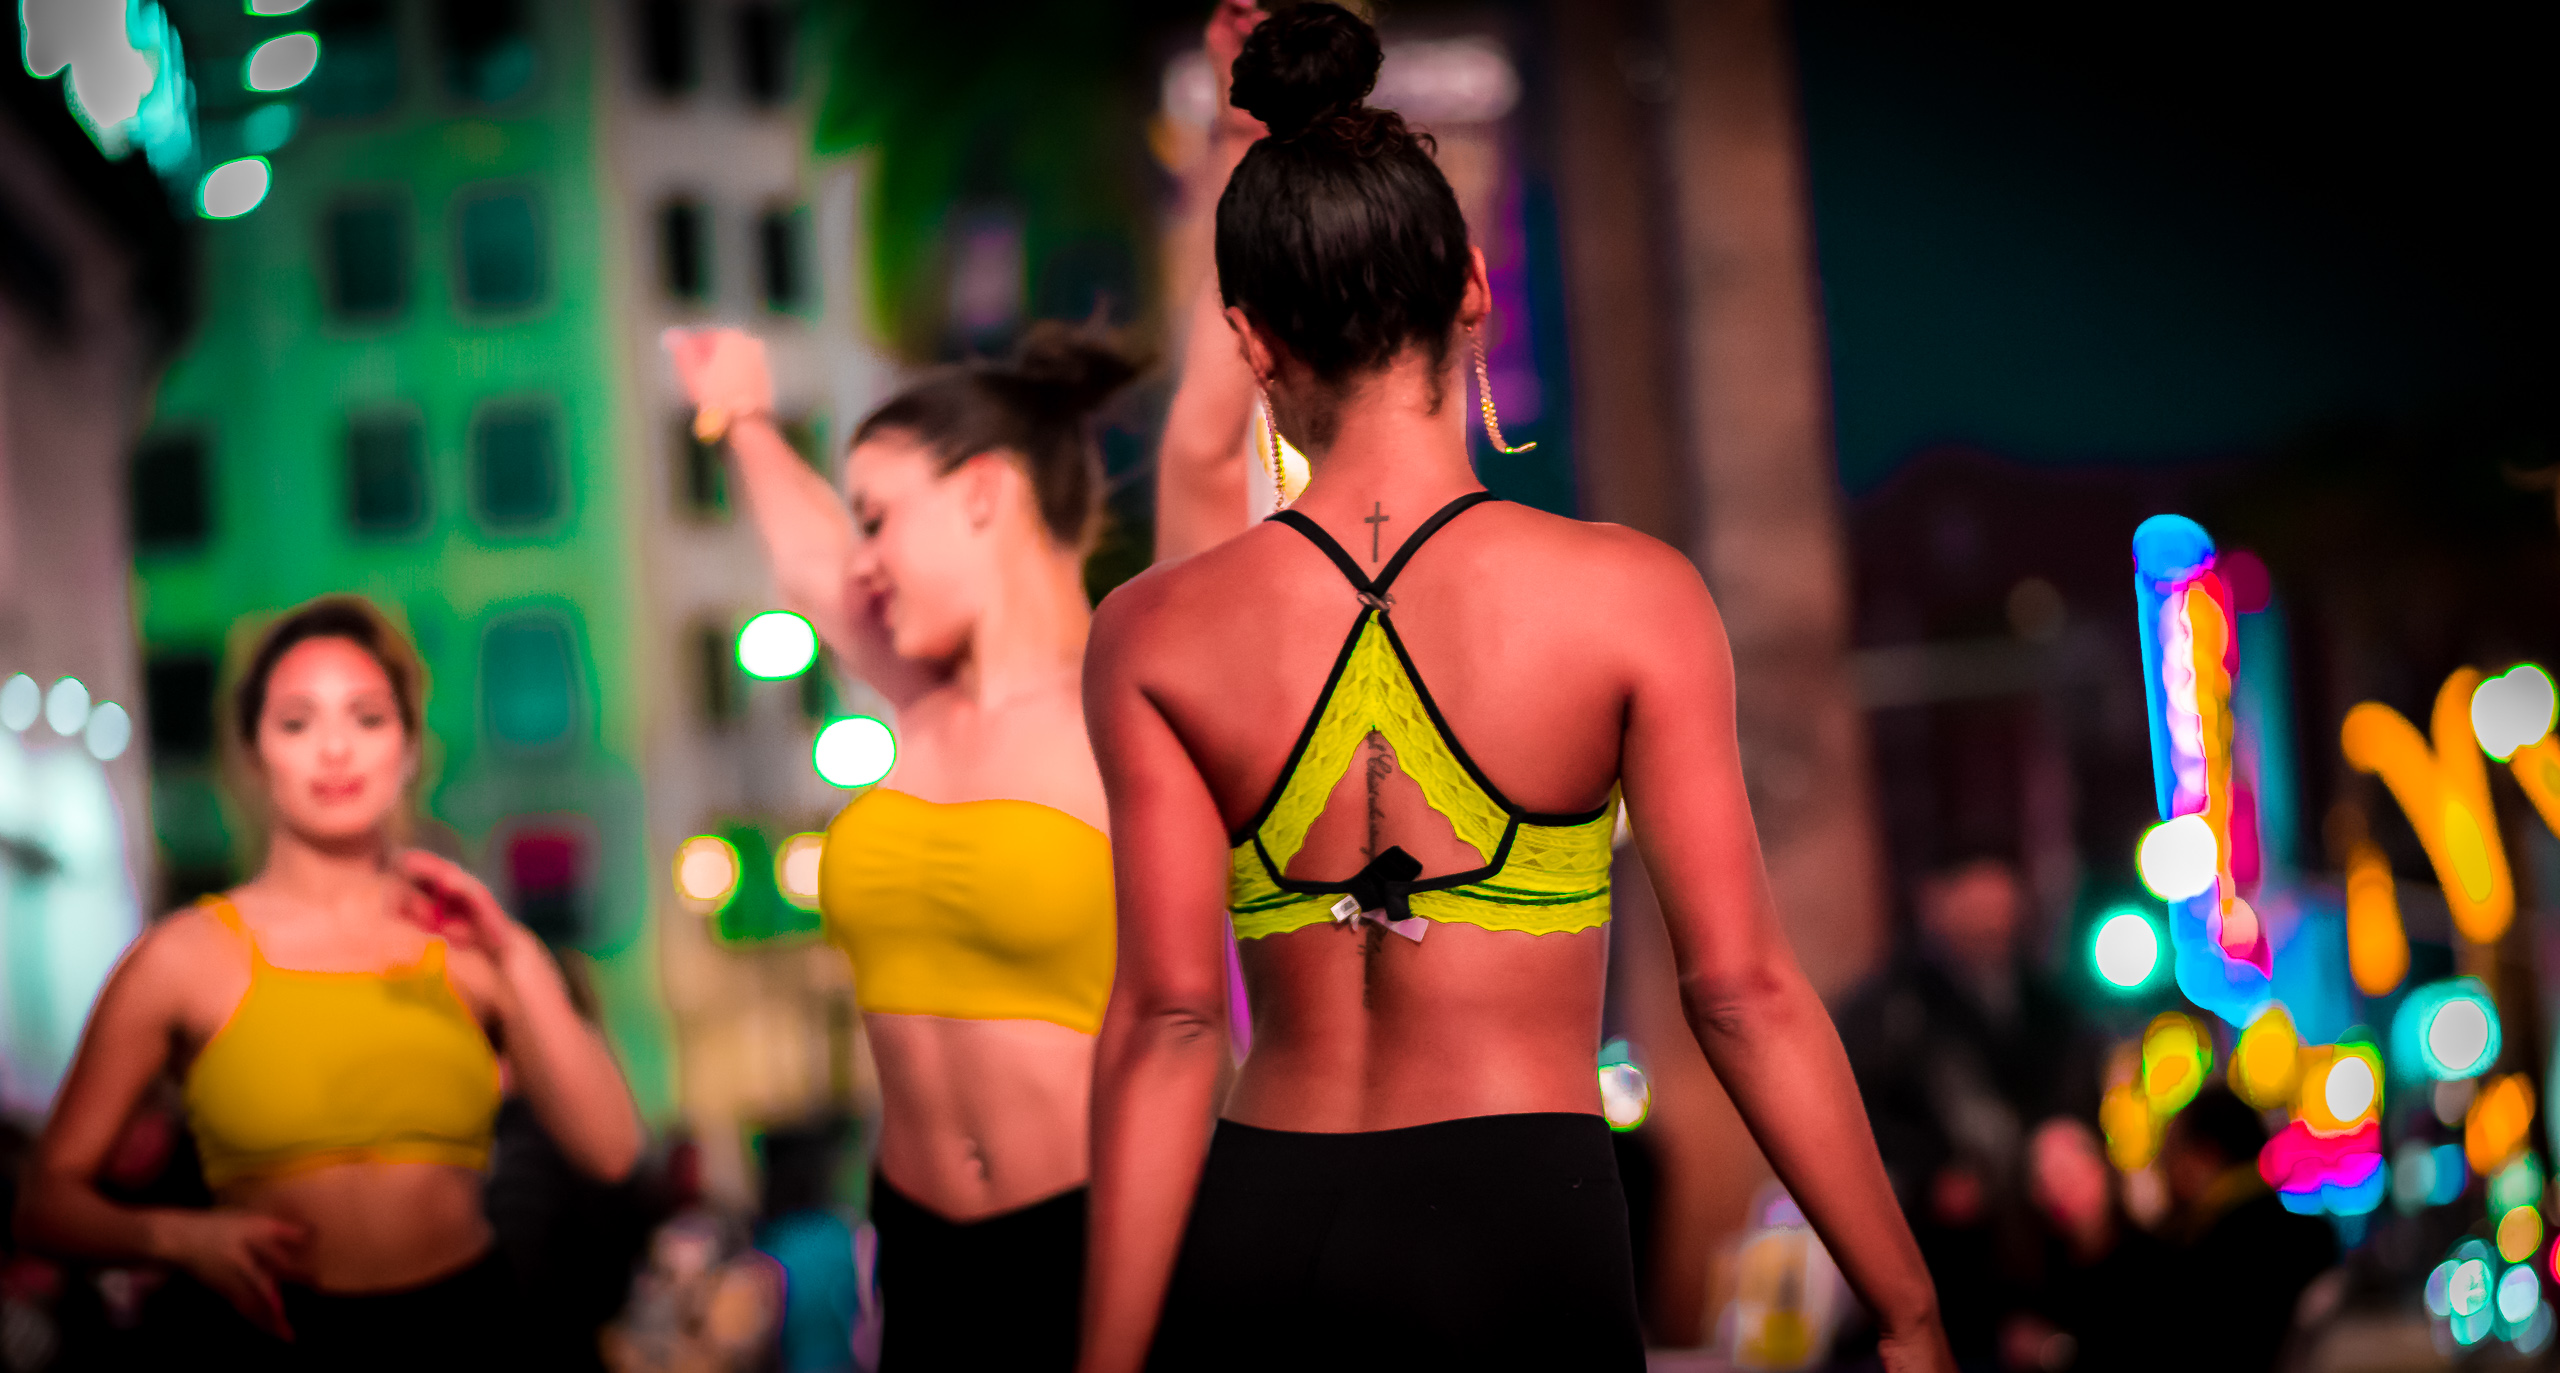 Dancers in green and yellow tops and black pants perform for a dance video on Hollywood Blvd.